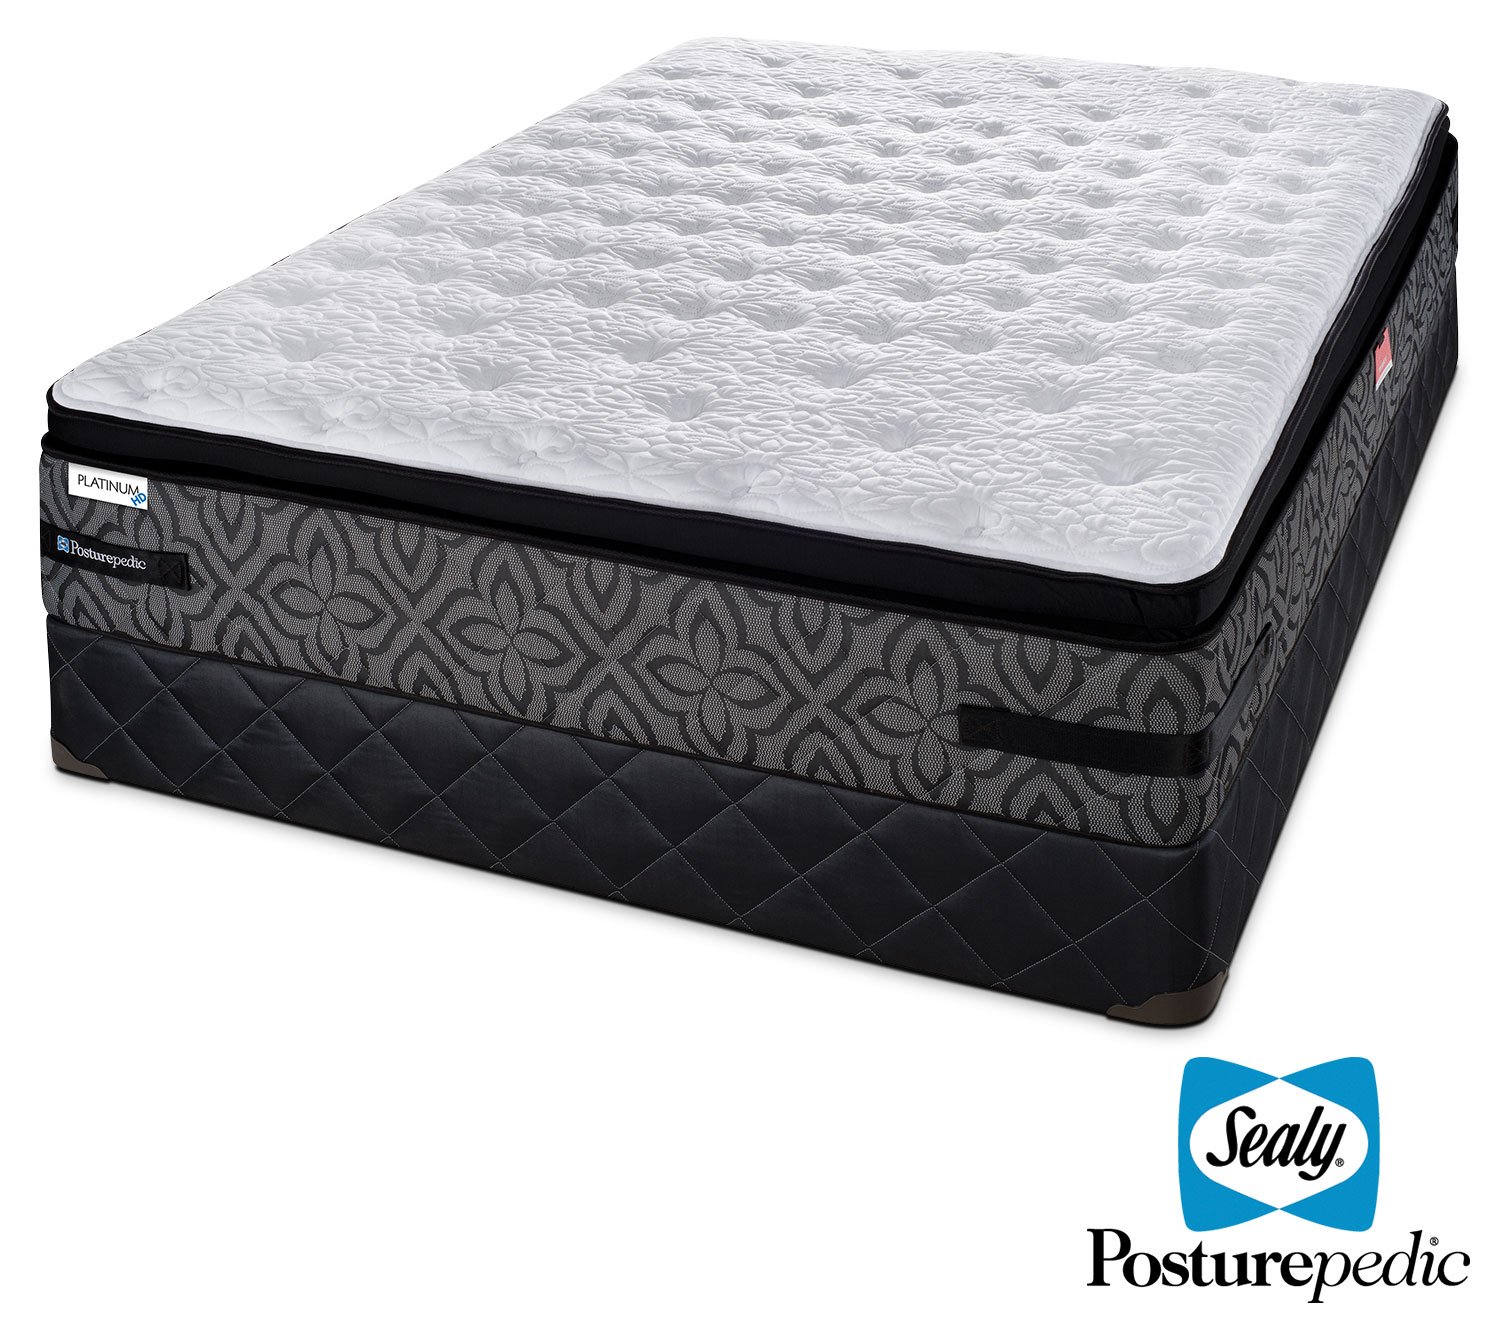 Sealy Posturepedic 2 K Firm Full Mattress And Boxspring Set Leon 39 S